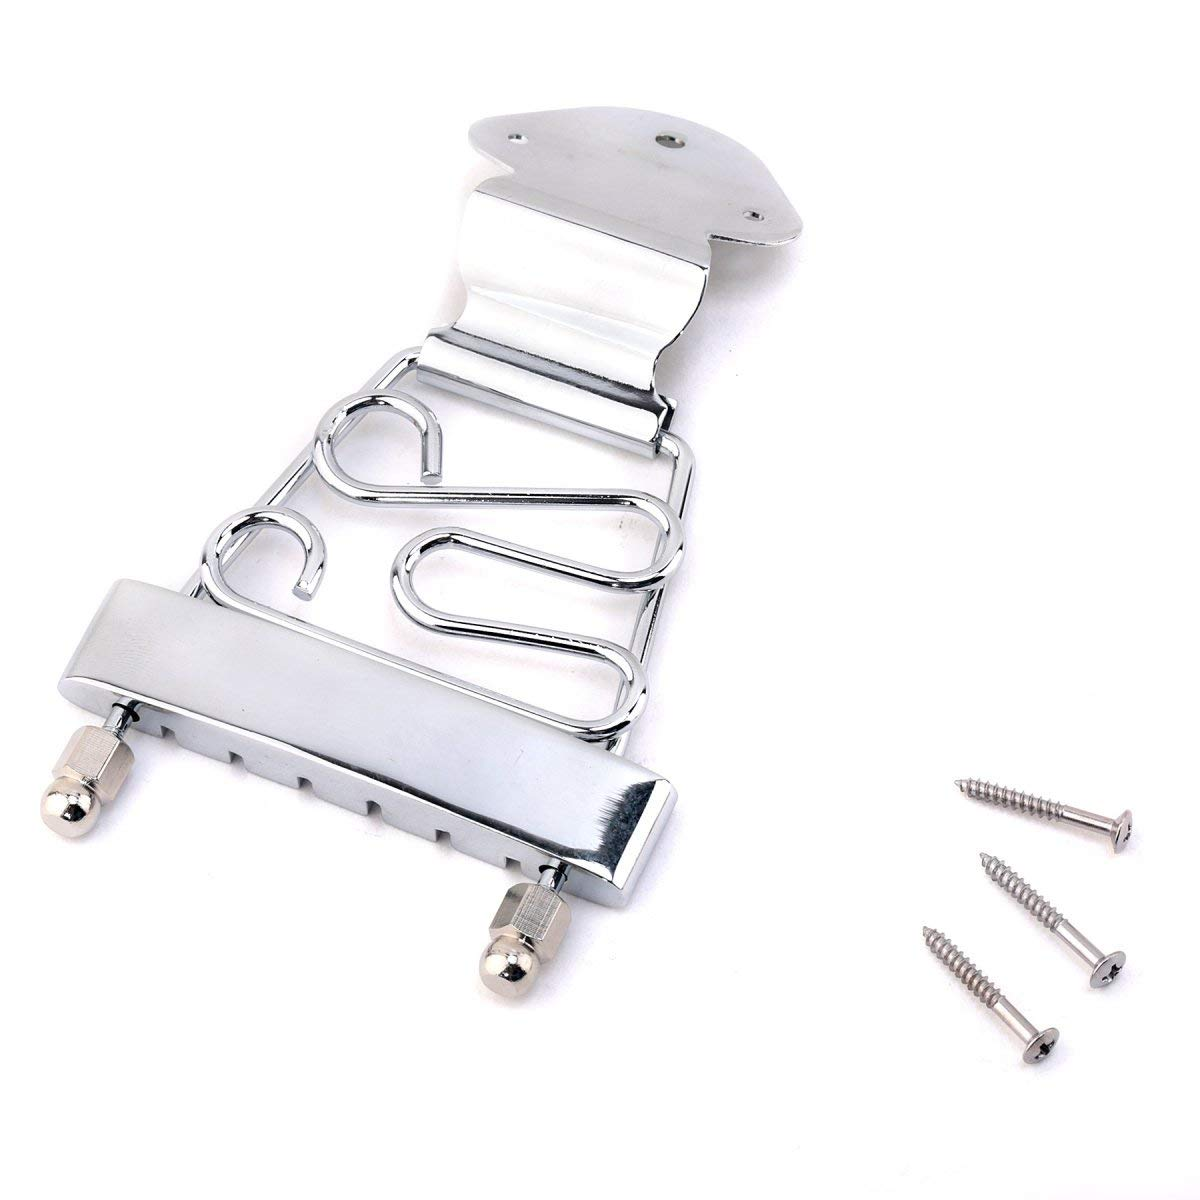 Musiclily Metal Trapeze Tailpiece For 6 String Electric Guitar Parts, Chrome MX1050CR